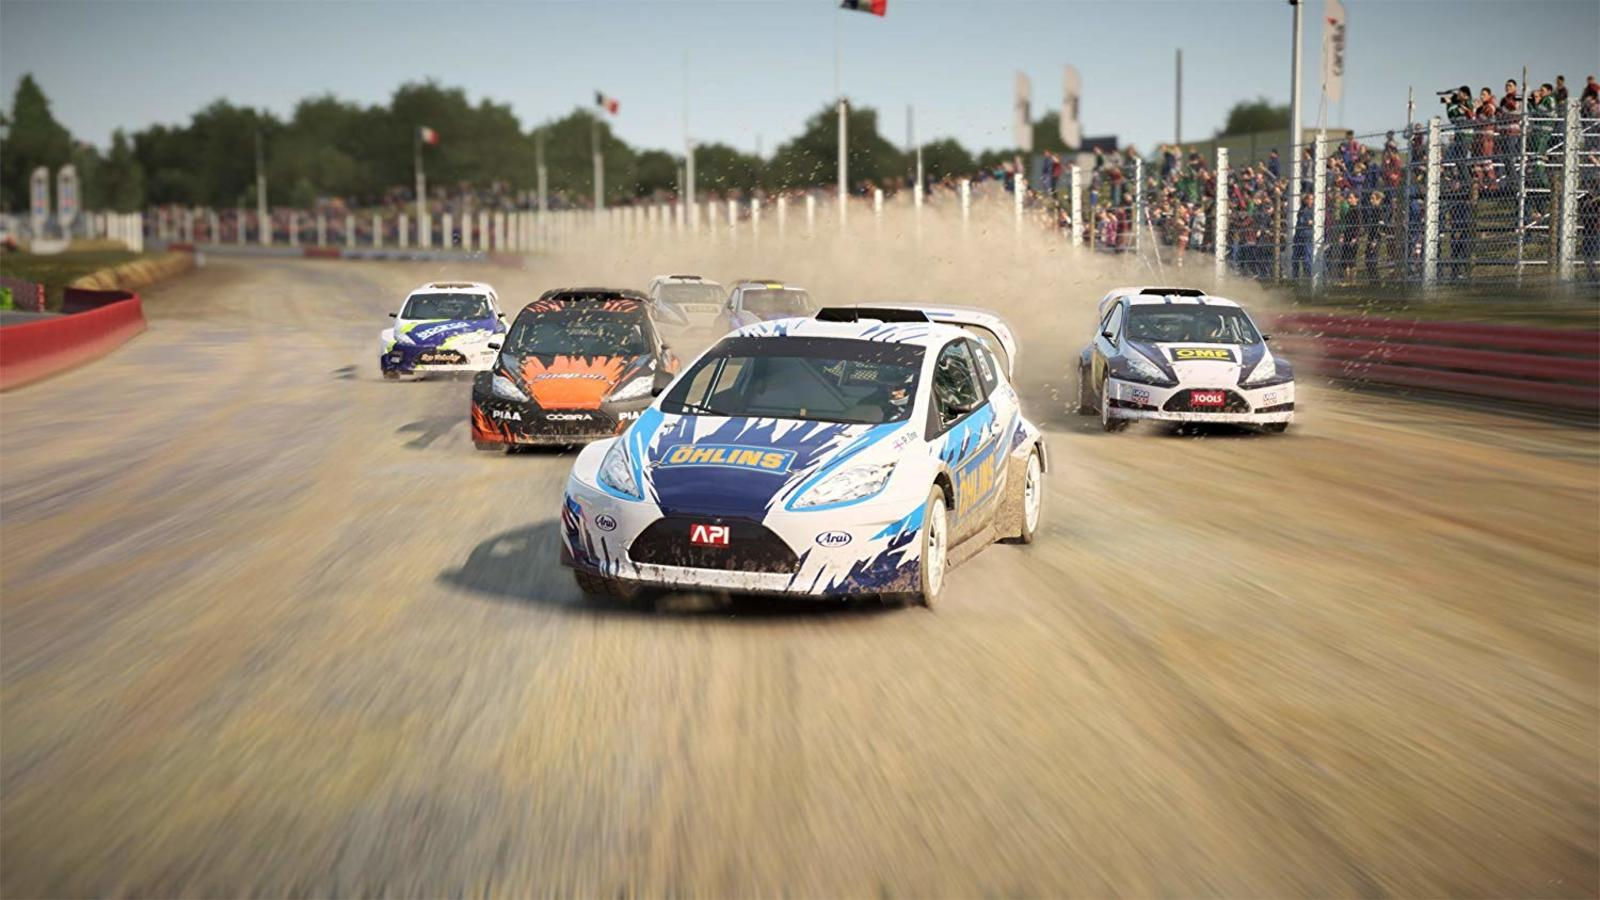 Dirt 4 is the best racing game on PlayStation 4